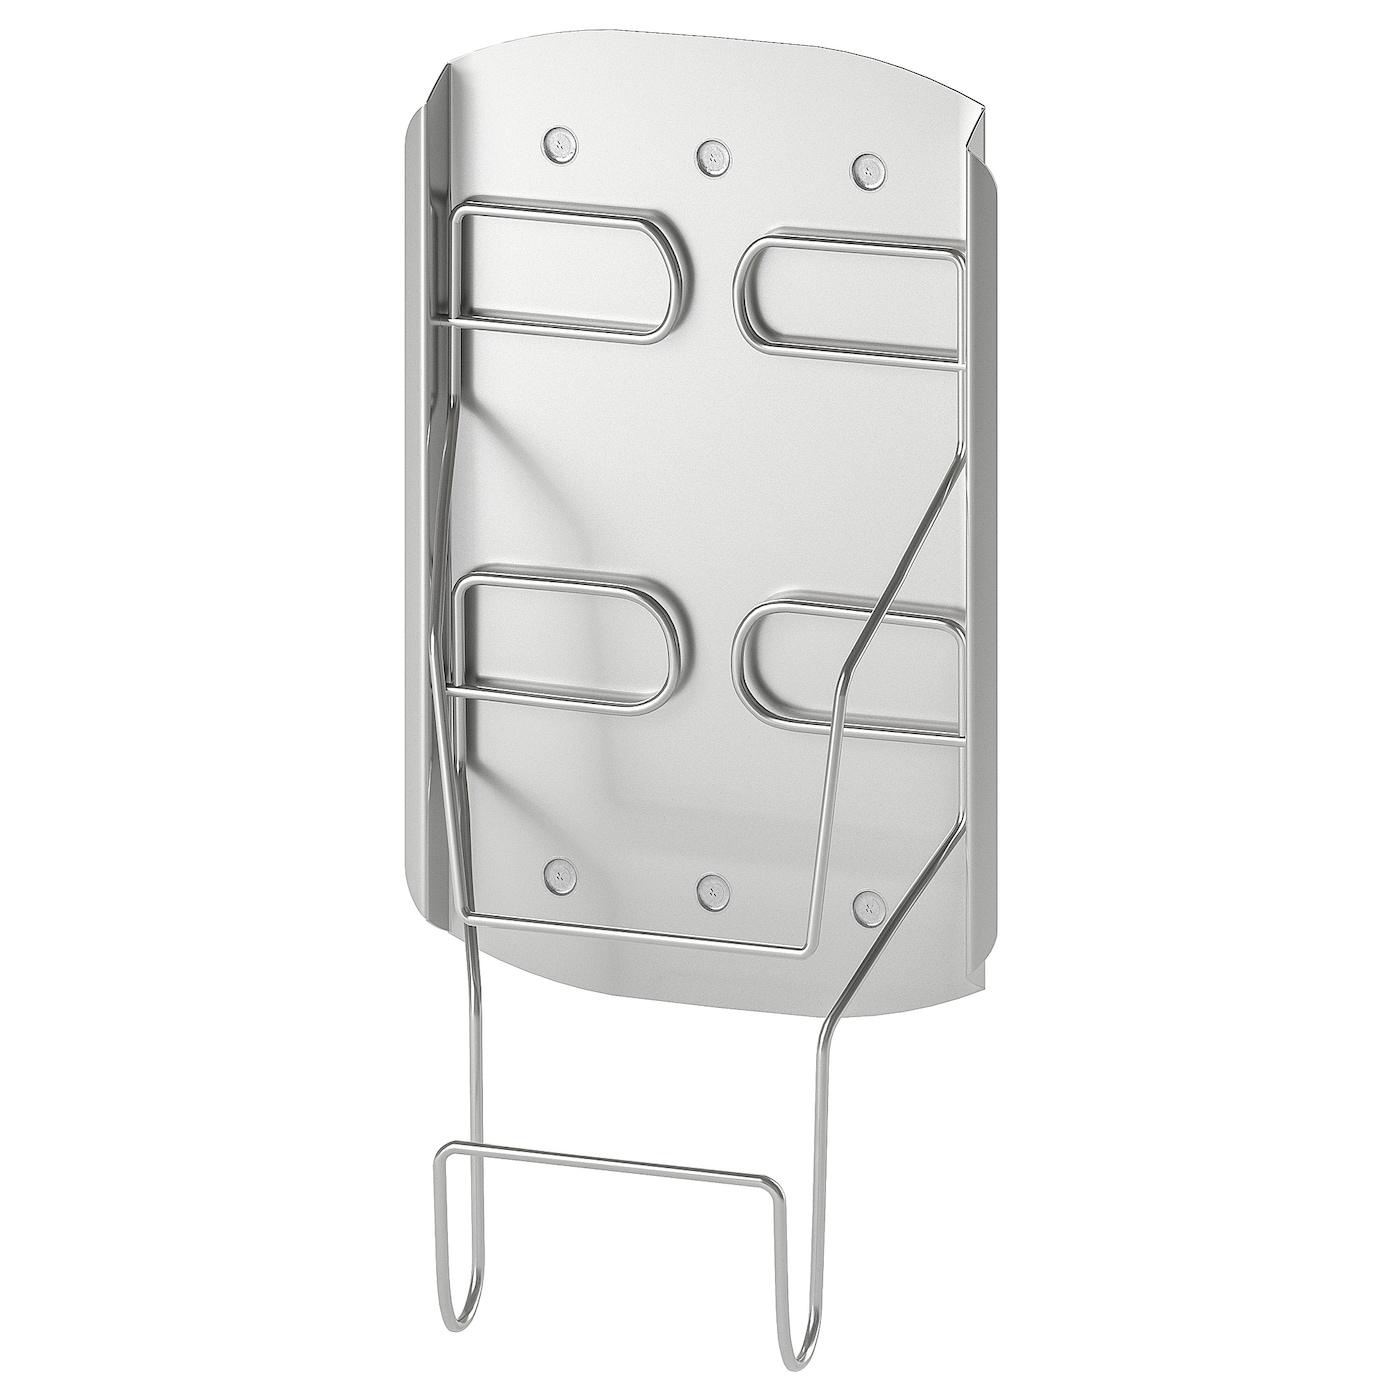 IKEA VARIERA holder for iron Keeps things inside your cleaning cabinet organised and easy to access.